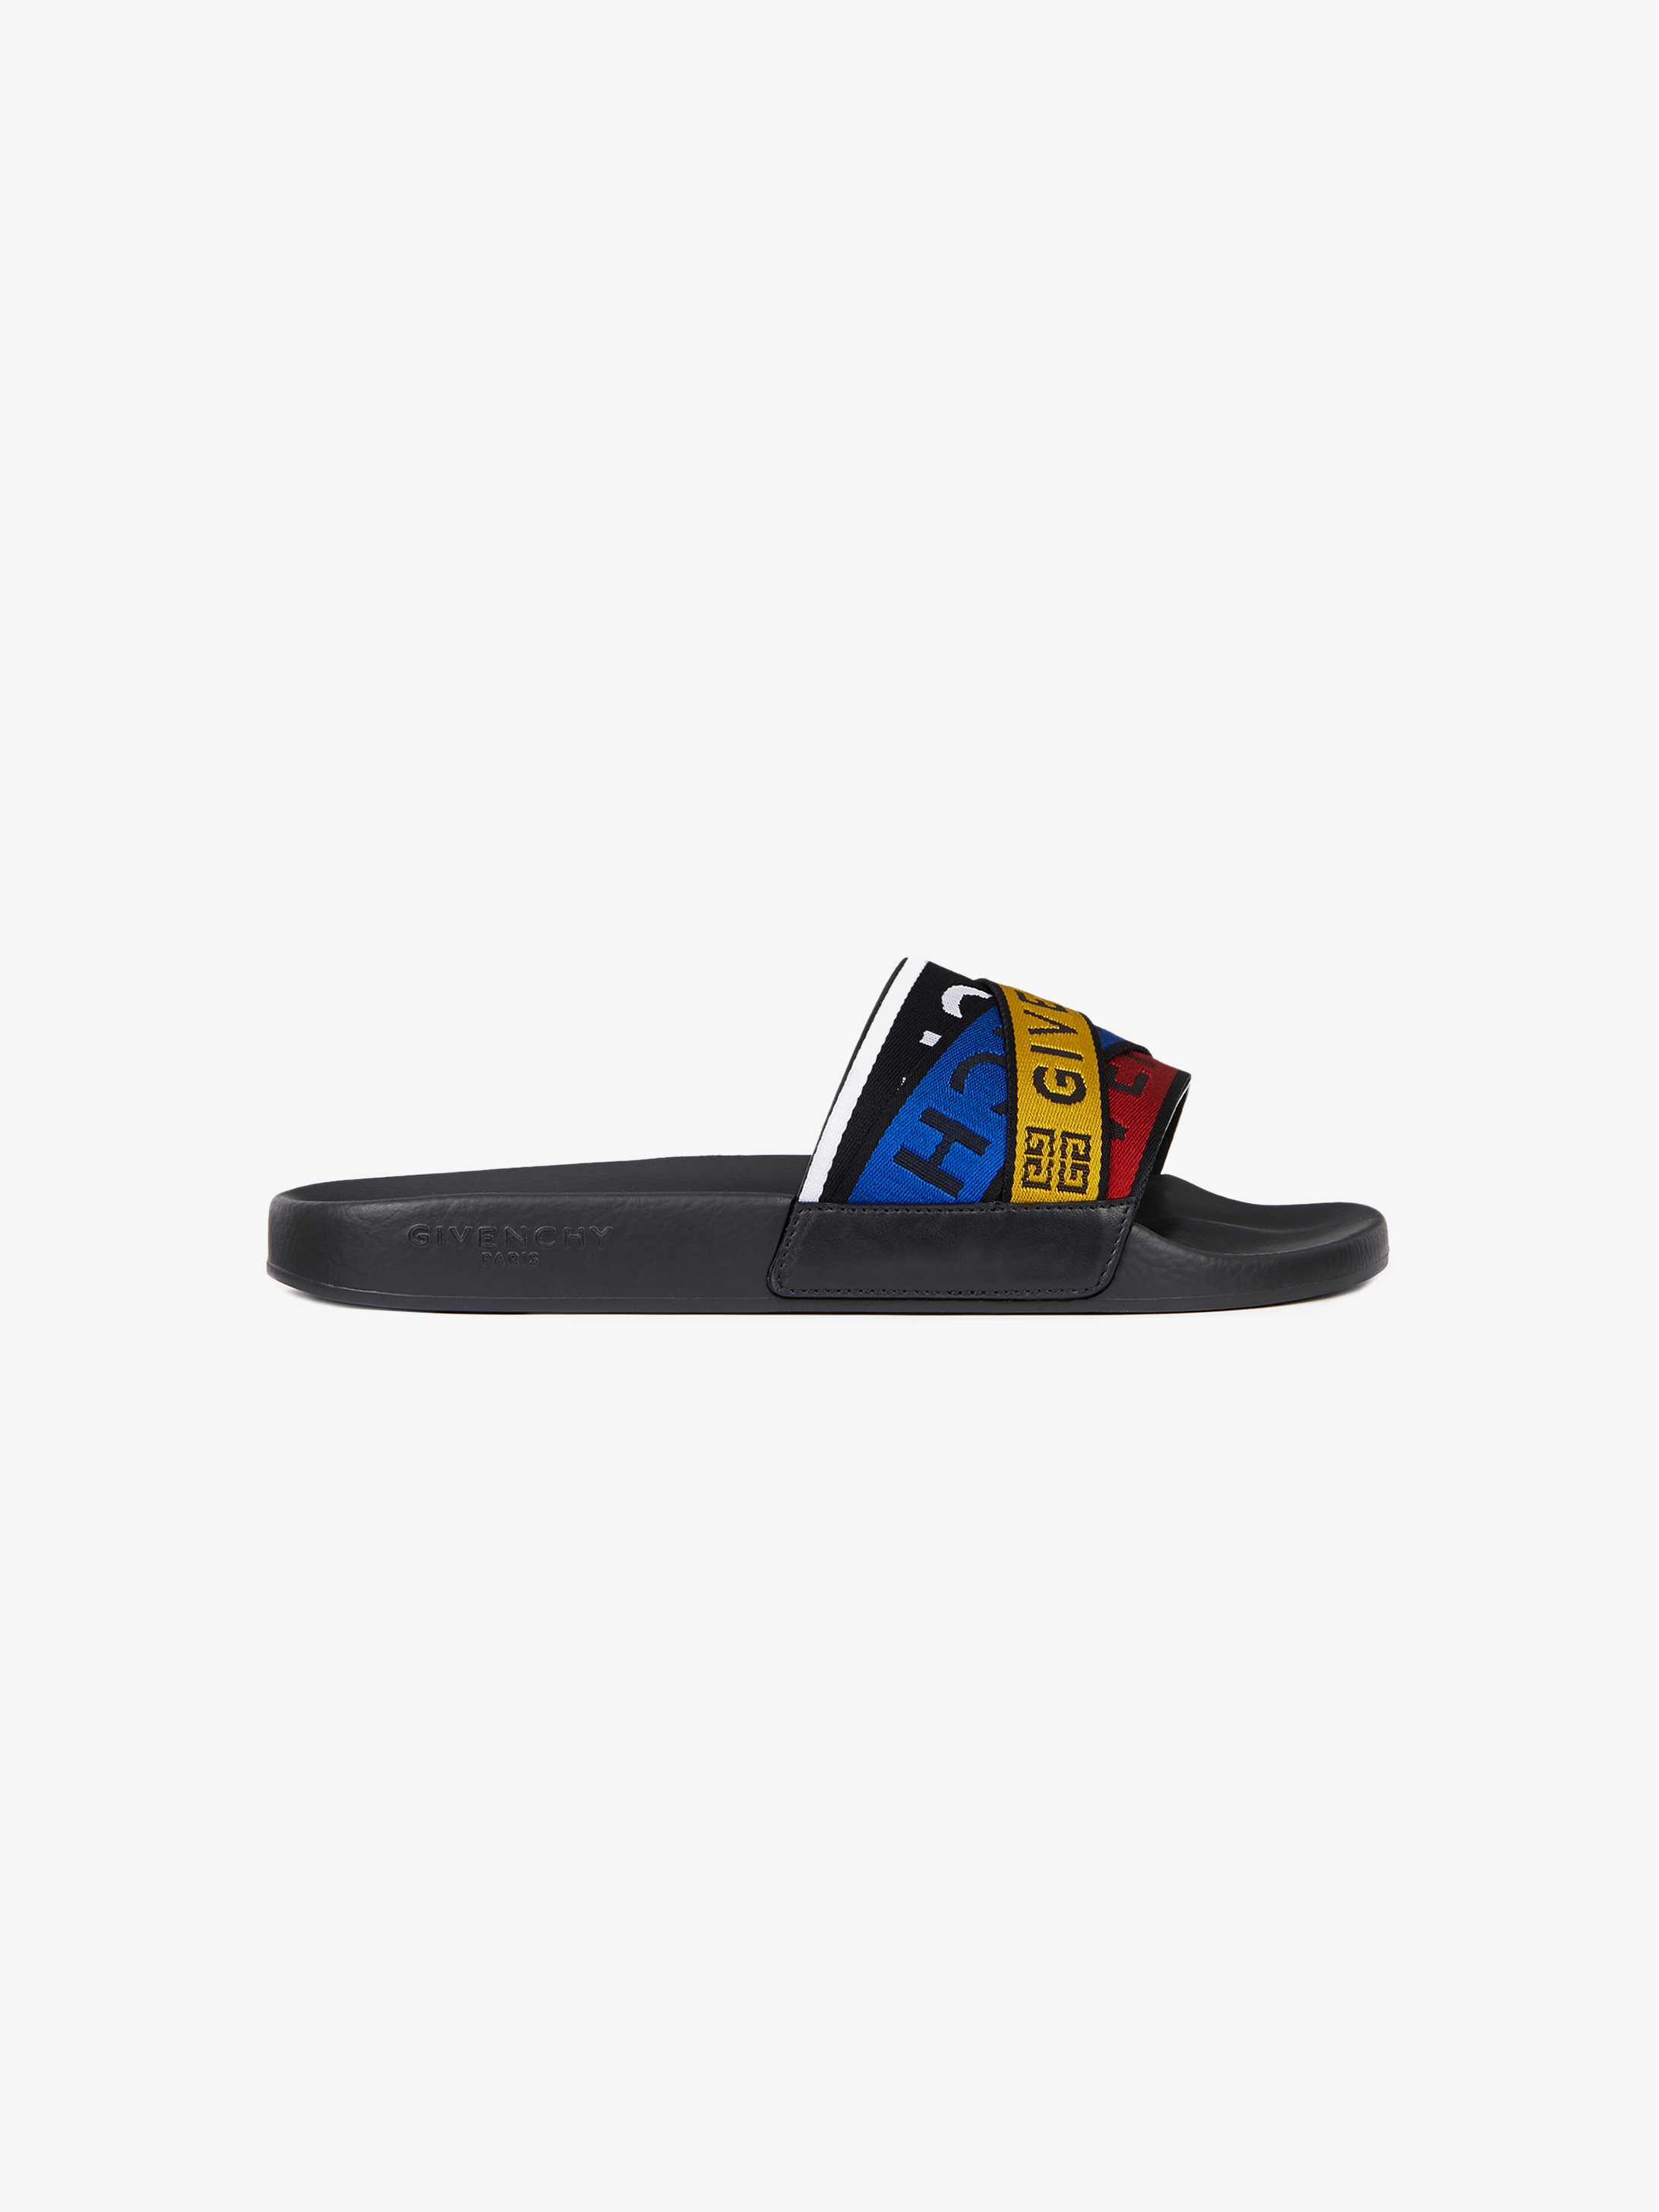 GIVENCHY 4G webbing sandals in leather and rubber